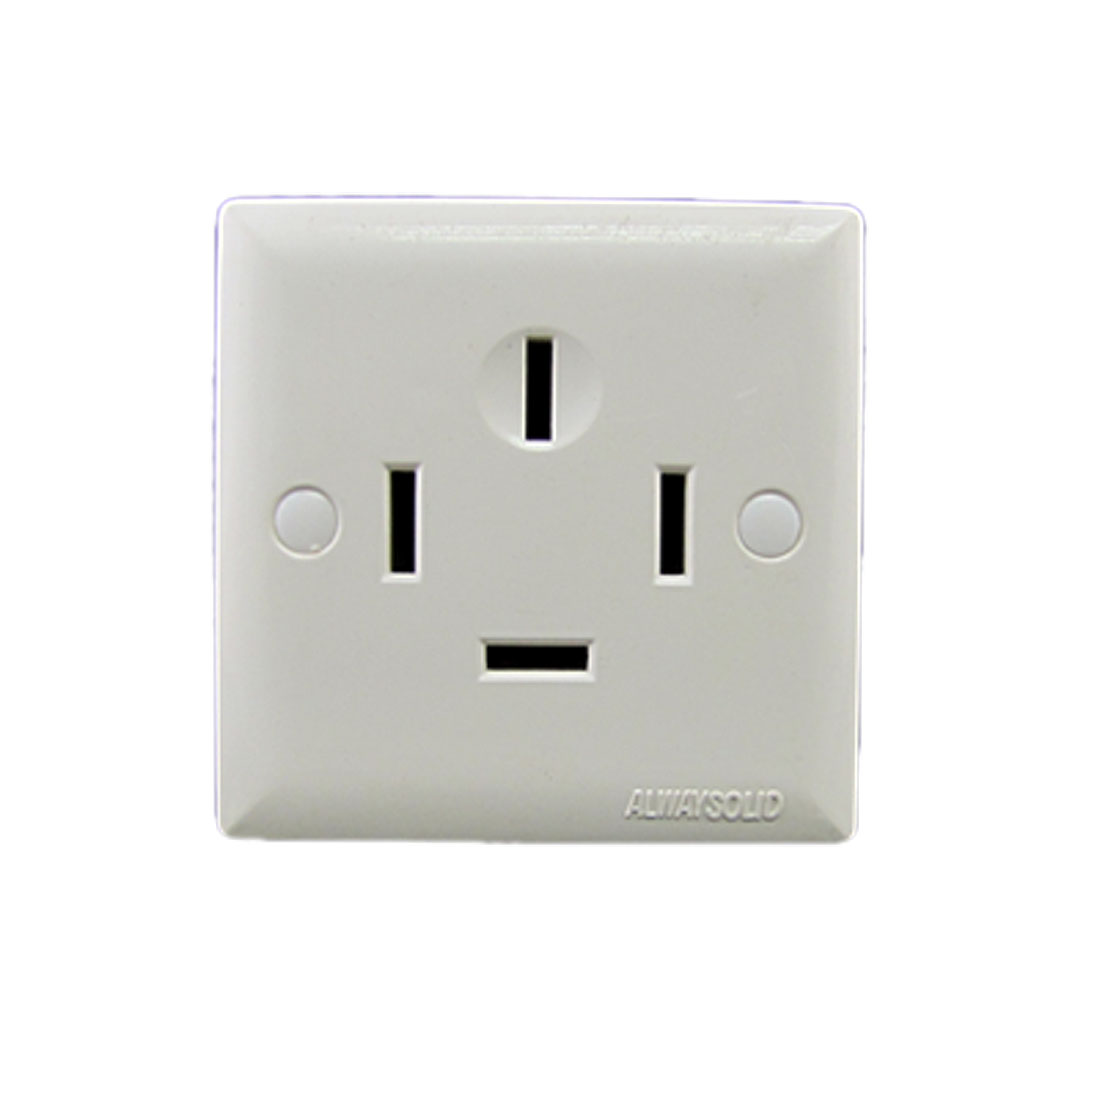 AC 380V 25A Three 3 Phase Four 4 Wire Wall Panel Power Socket Outlet White